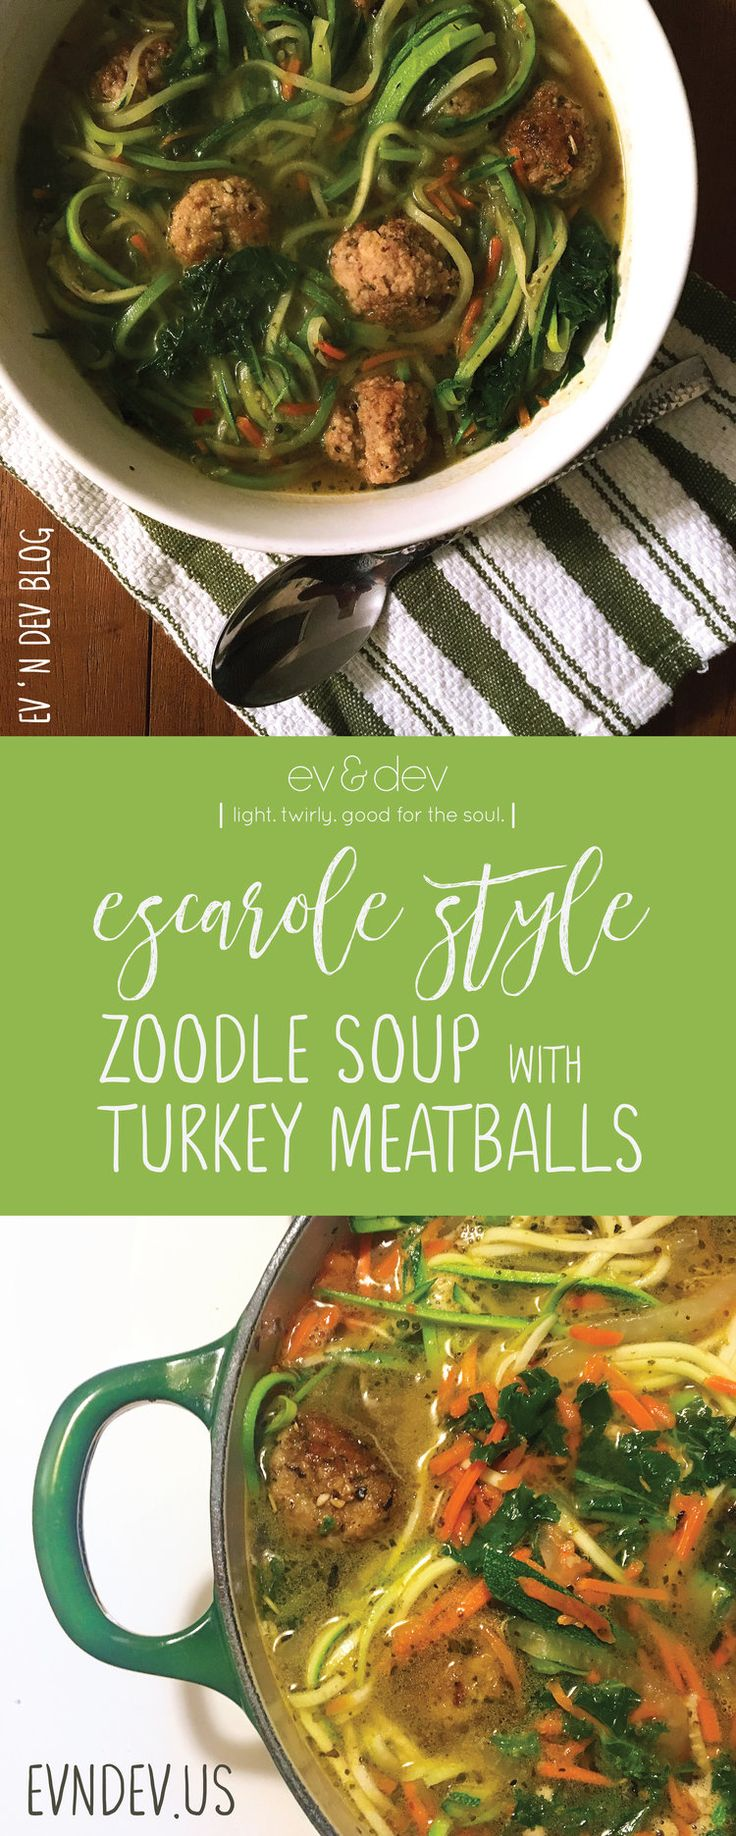 ... Escarole-Style Zucchini Zoodle Soup with Turkey Meatballs — Ev 'n